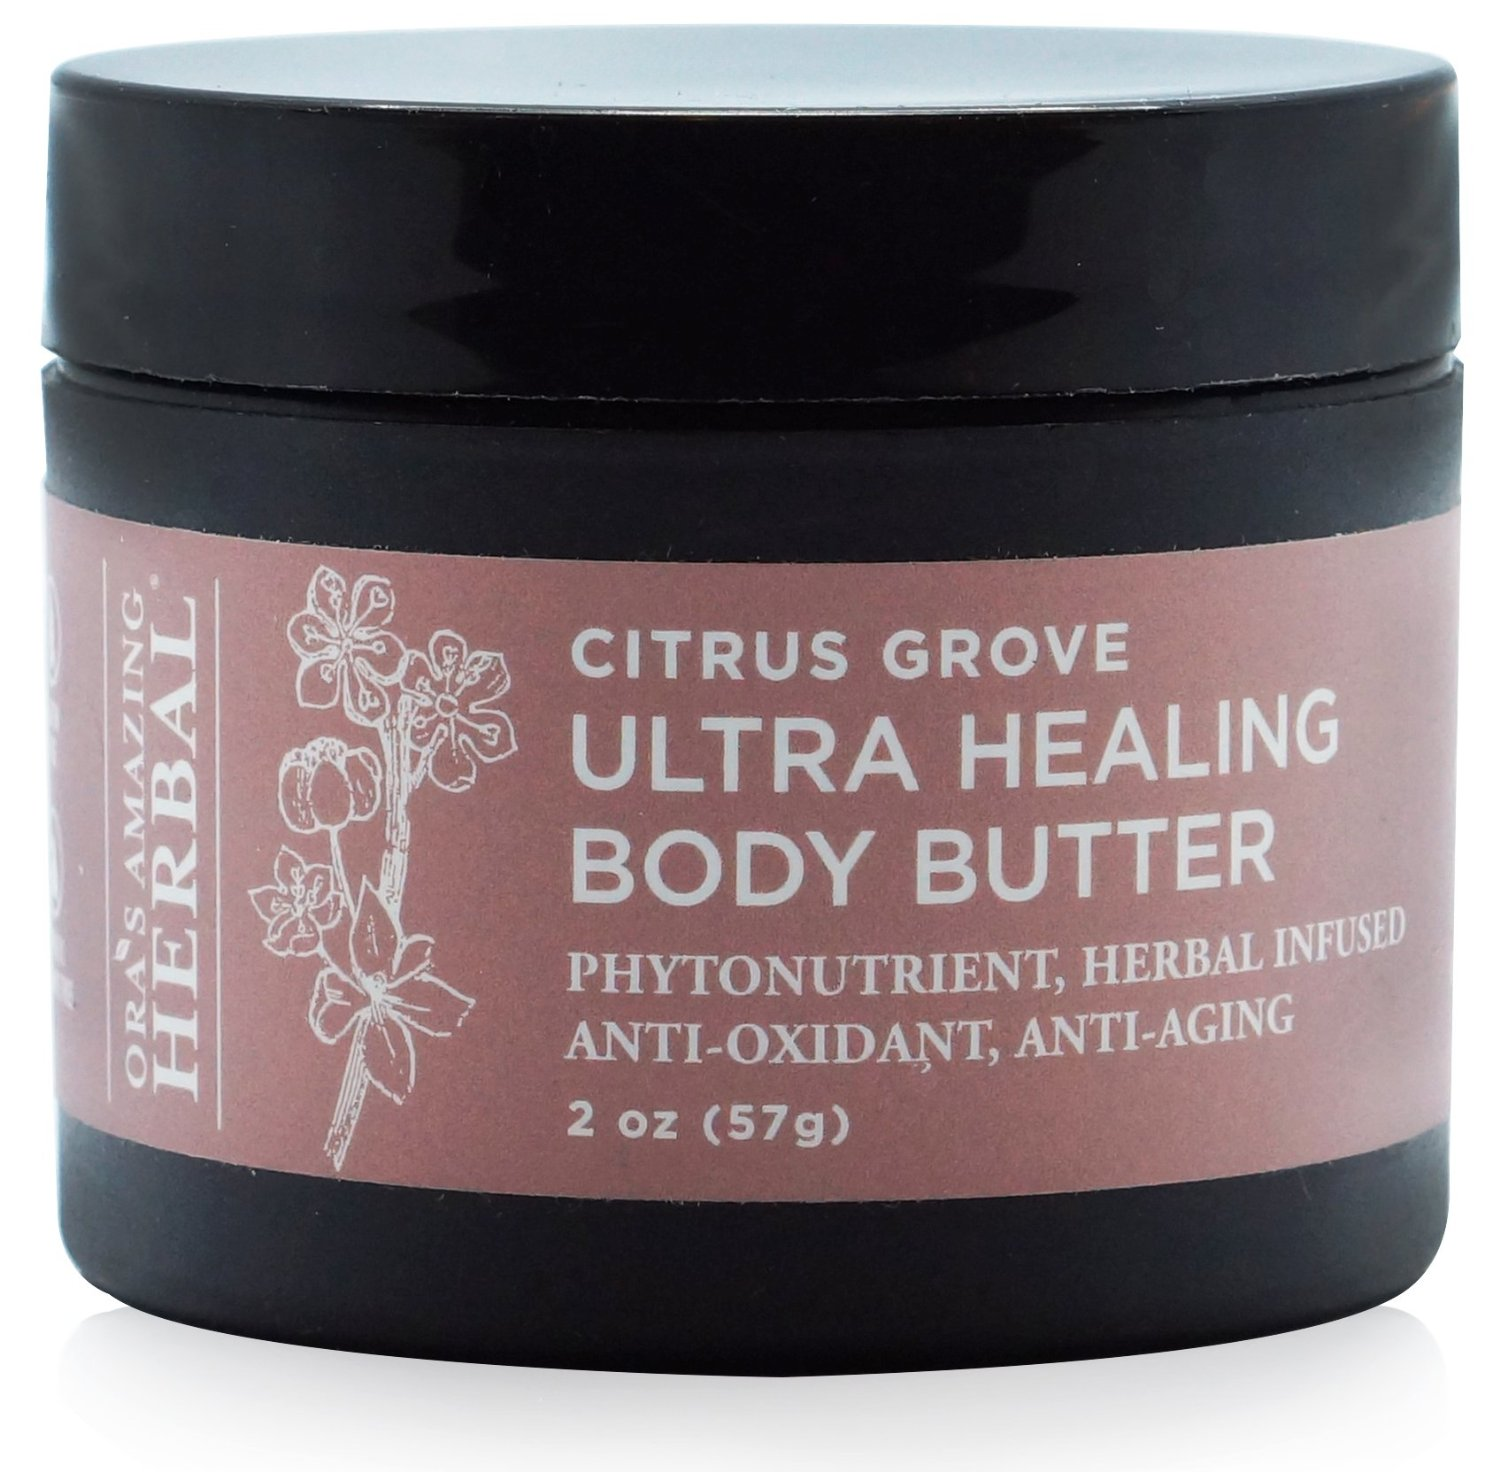 Ultra Healing Shea Body Butter and Intensive Hand Cream Moisturizer, Paraben Free (Citrus Grove Scent, 2 oz), Ora's Amazing Herbal, Organic Shea Butter, Organic Oils of Apricot, and Rosehip Seed Oil